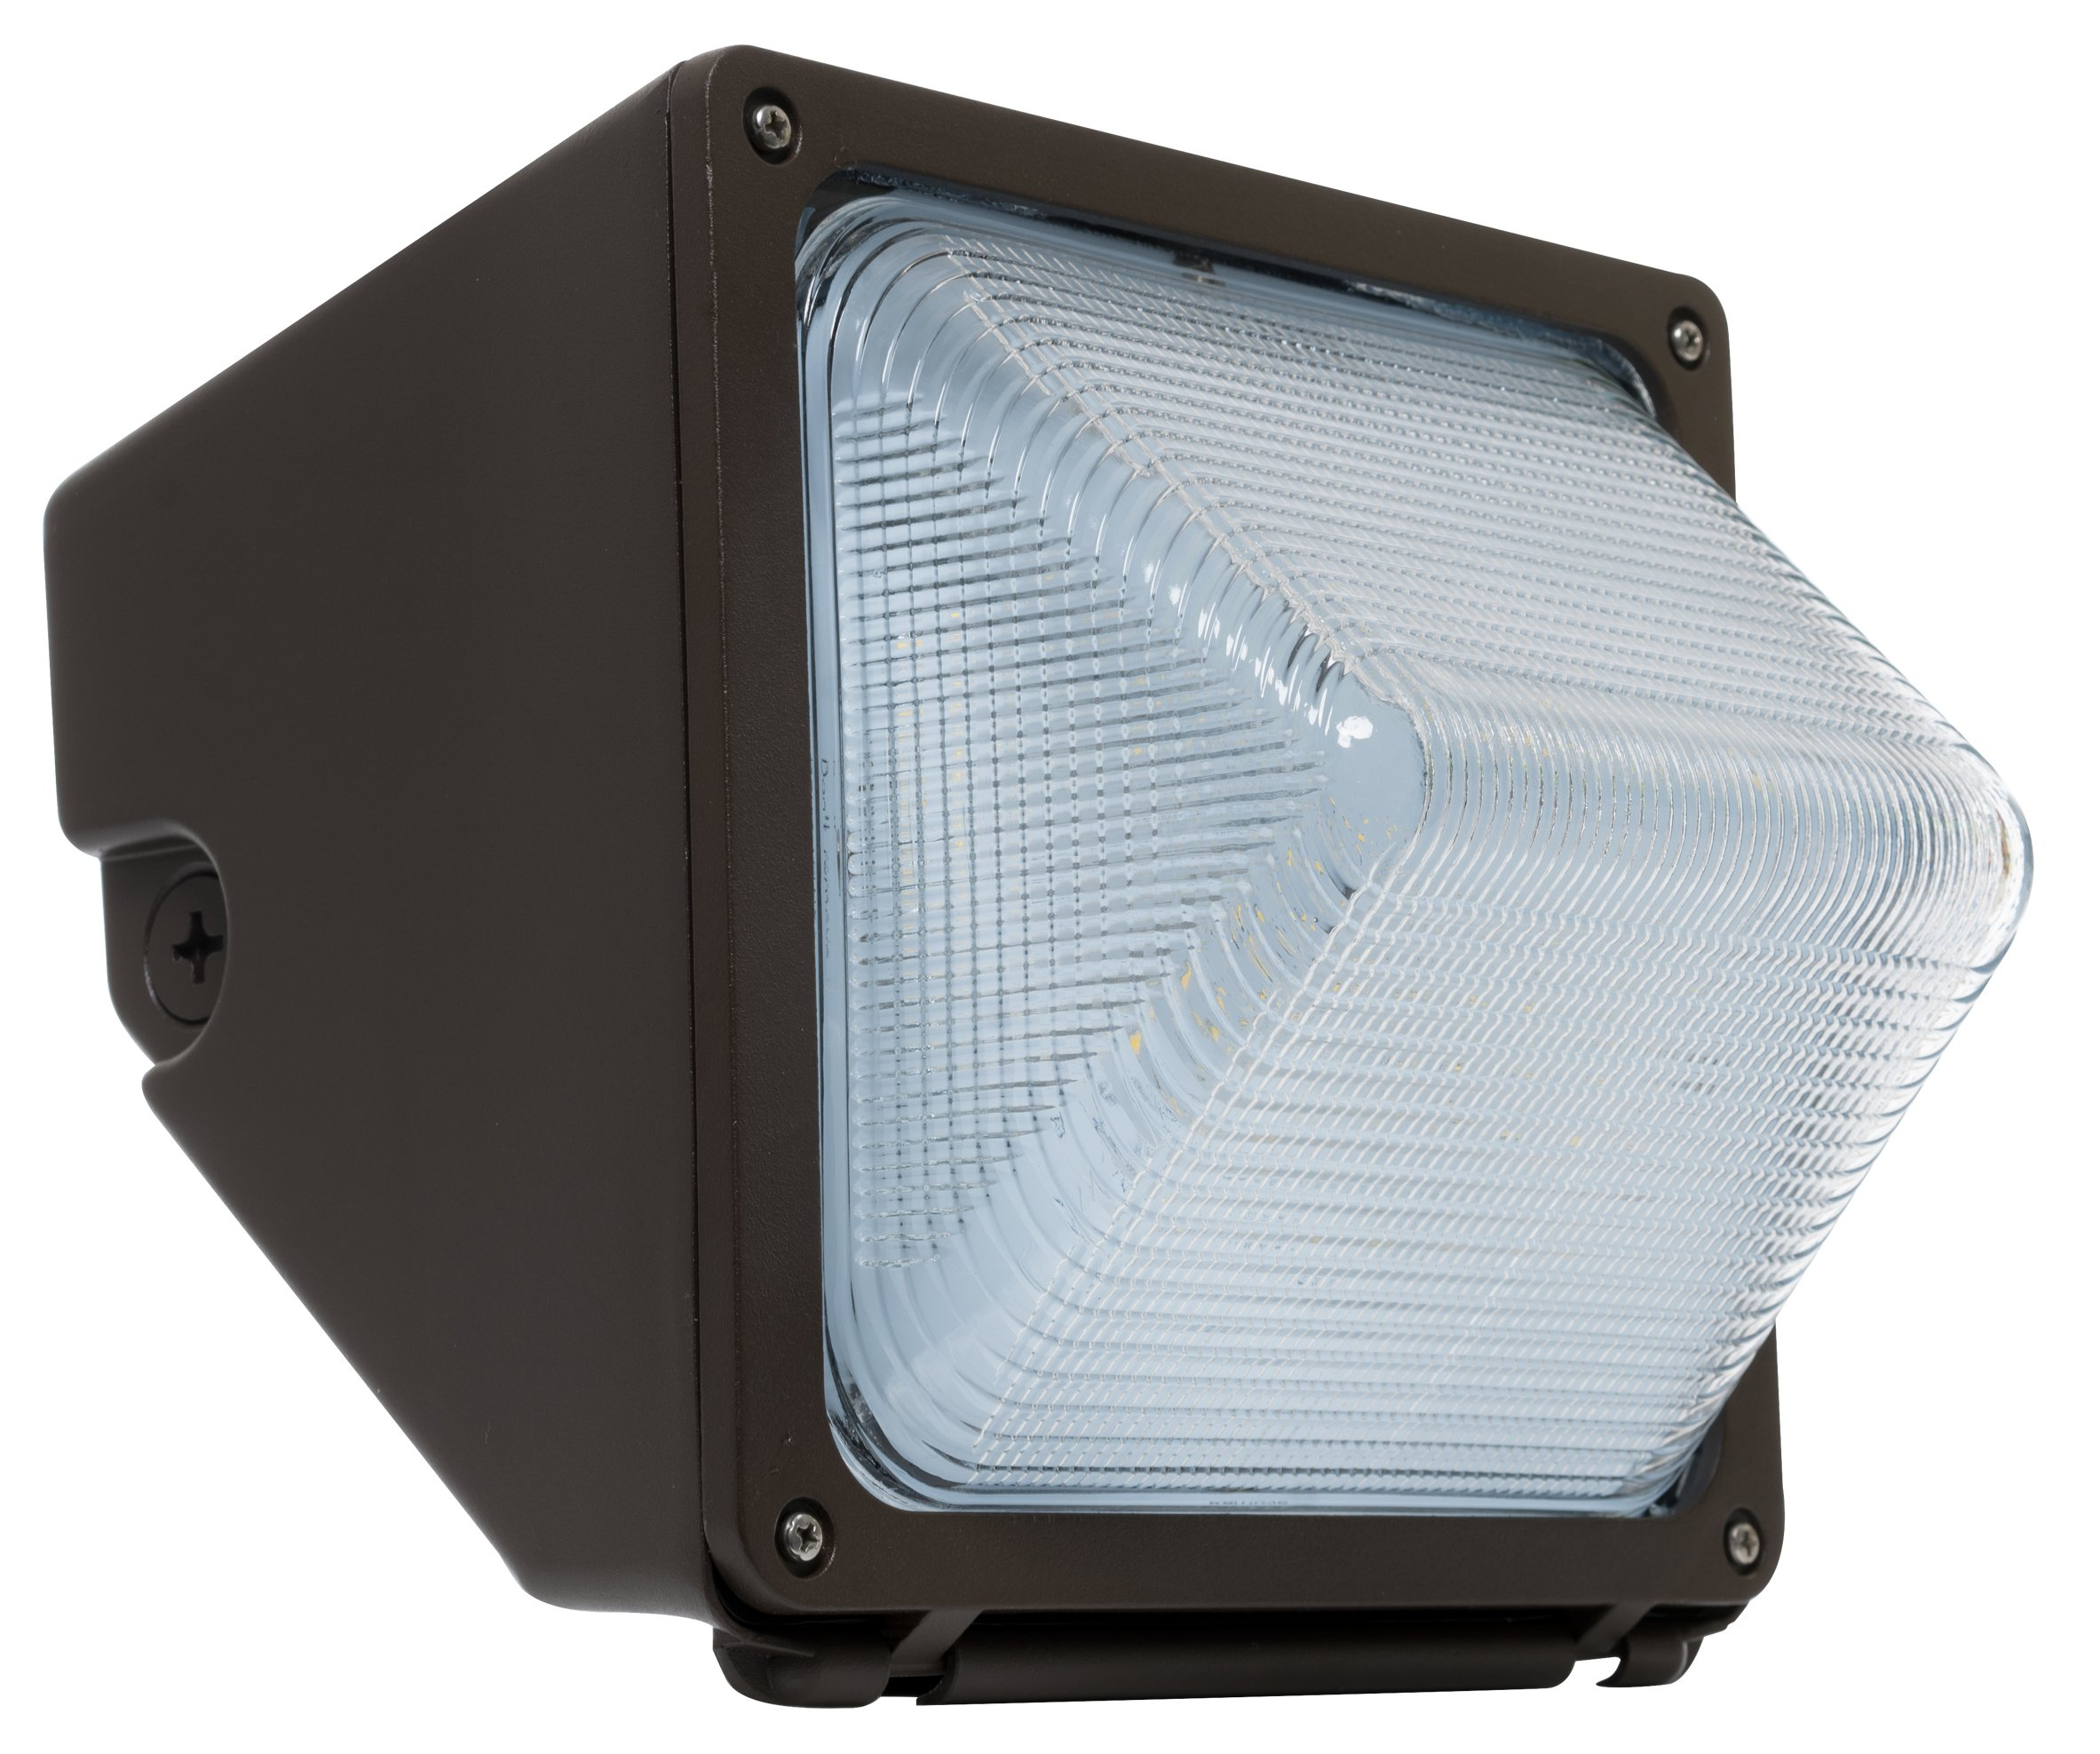 Westgate LED Wall Pack Fixture - Outdoor Security Wall Light for Area, Yard, Parking - Commercial Grade Industrial Quality HPS/HID Replacement - IP65 Waterproof UL Listed(30 Watt, 3000K Warm White)